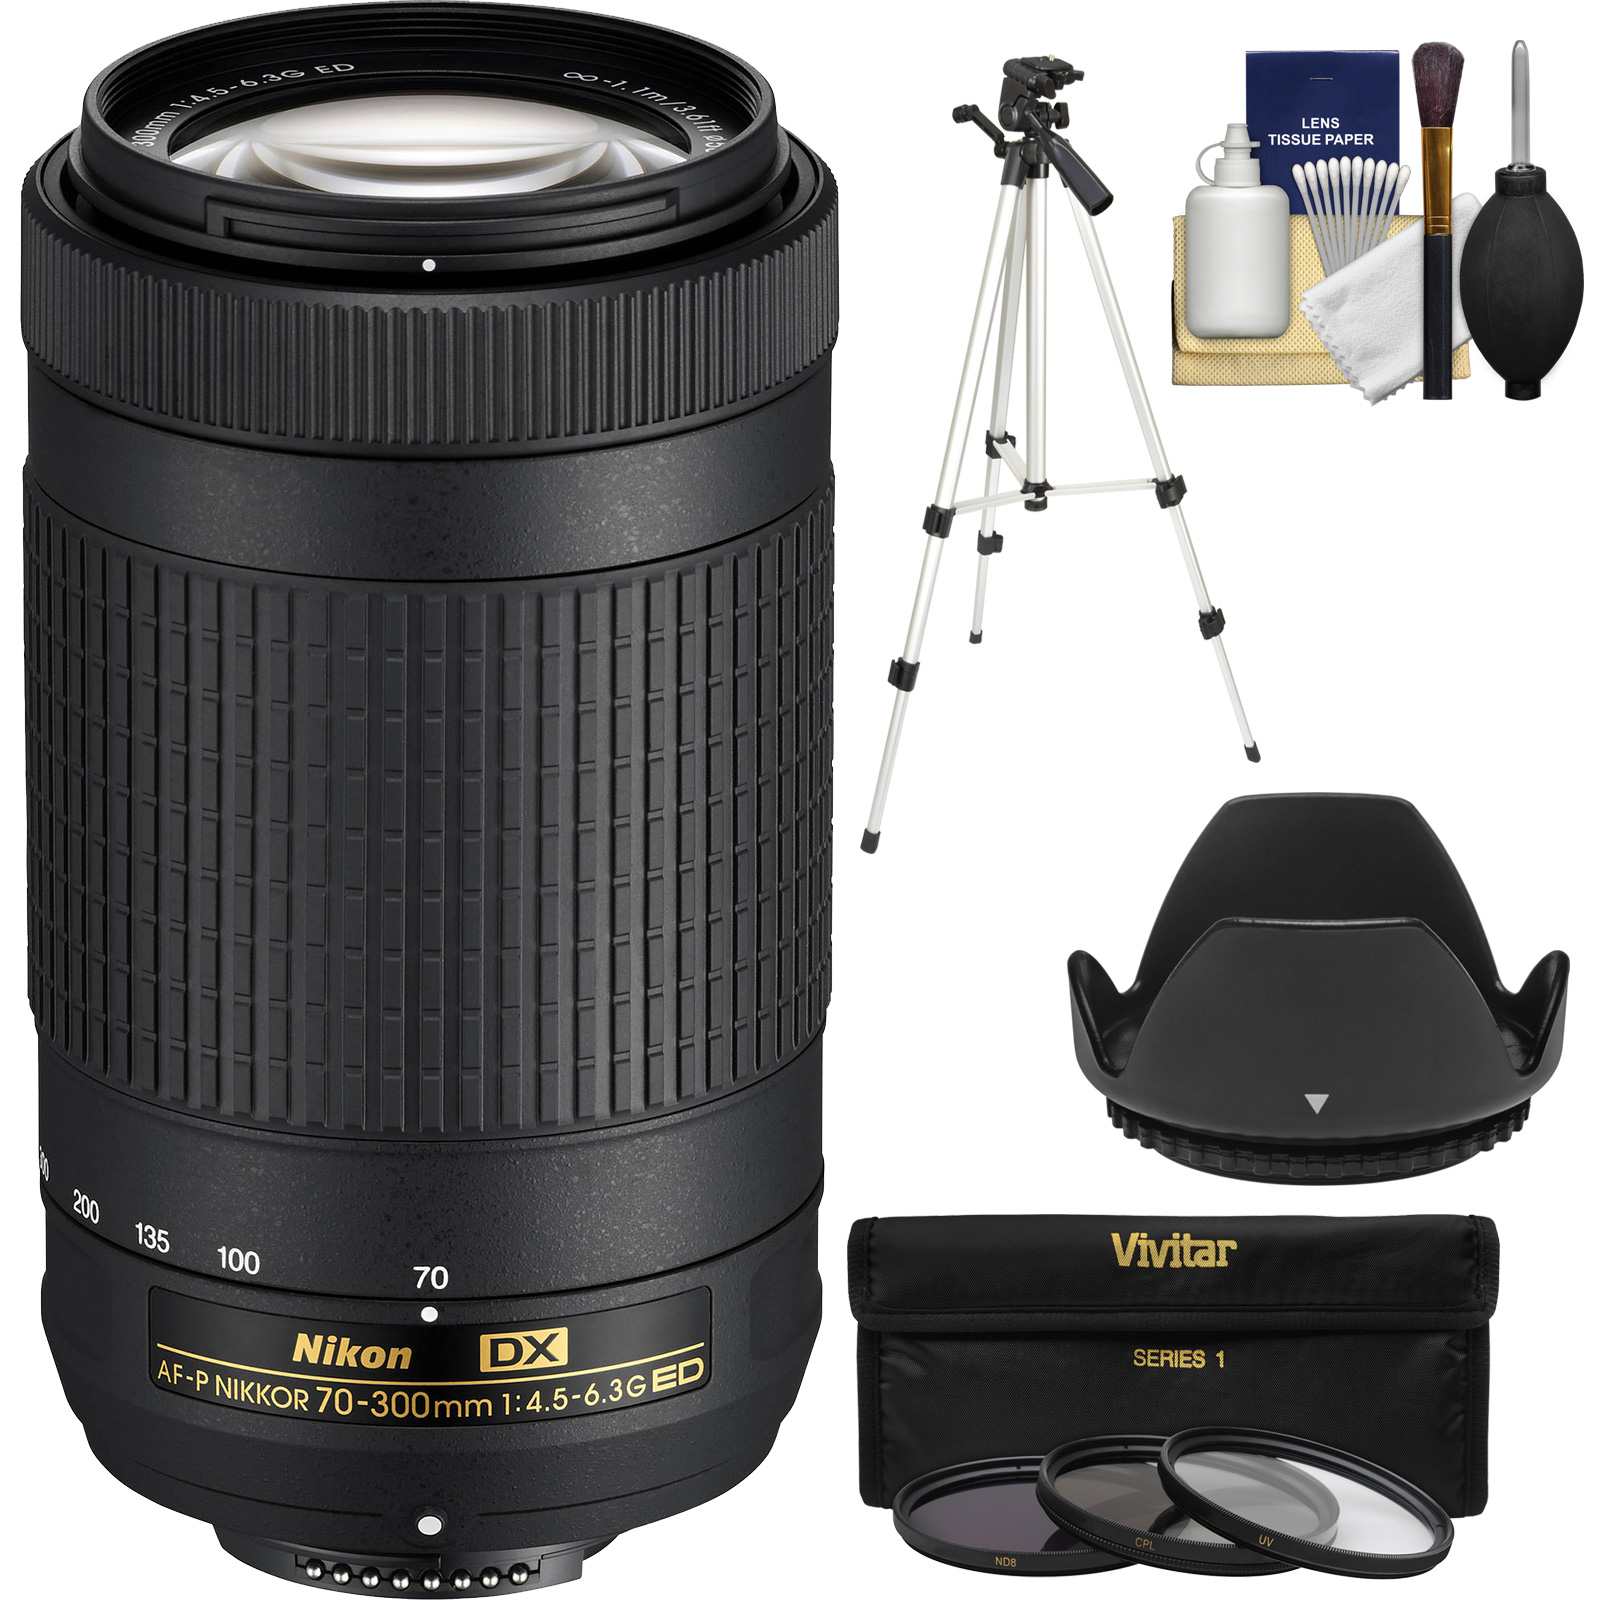 Nikon 70-300mm f/4.5-6.3G DX AF-P ED Zoom-Nikkor Lens - Factory Refurbished with 3 UV/CPL/ND8 Filters + Hood + Tripod + Kit